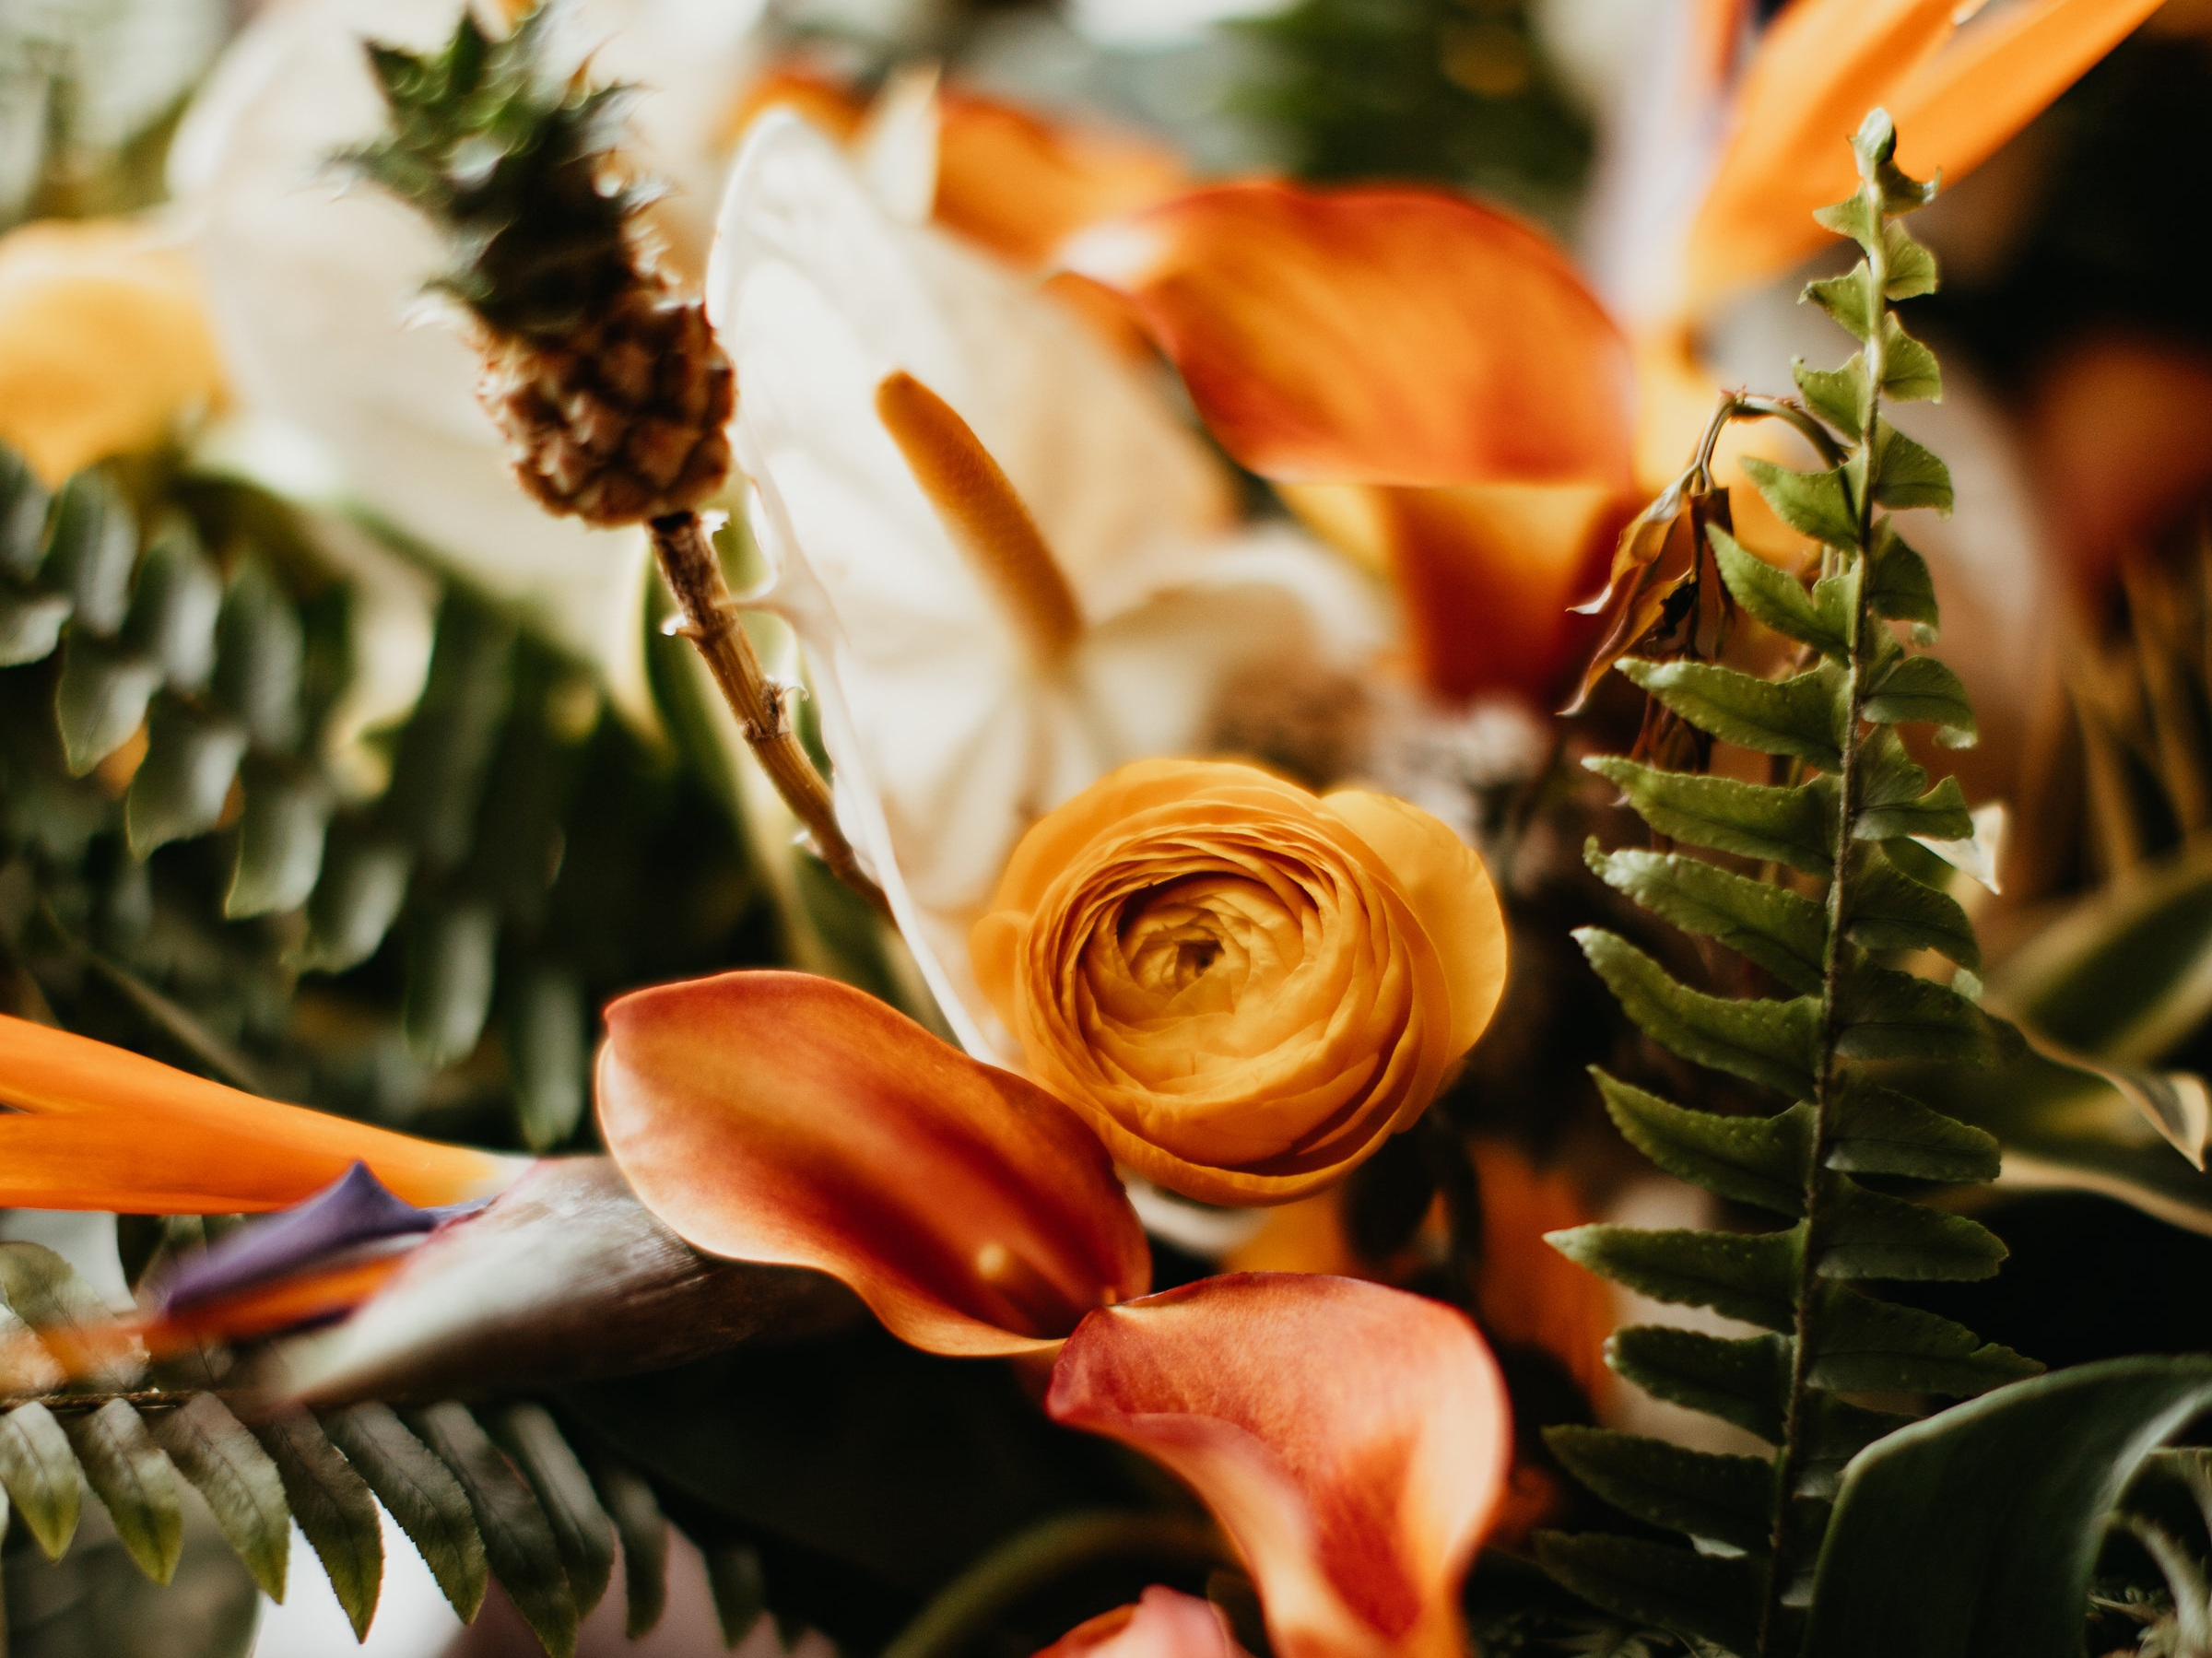 Chris and Carley wanted of a vibrant, tropical wedding day to tell their story that began with a groom in the Caribbean, and a bride that just loves the pineapple aesthetic! Bird of paradise, baby pineapples and other exotic florals brought these bouquets, boutonnieres, and centerpieces to life. #floraldesign #weddingflorals #weddingflowers #virginiawedding #virginiabride #virginiaflorist